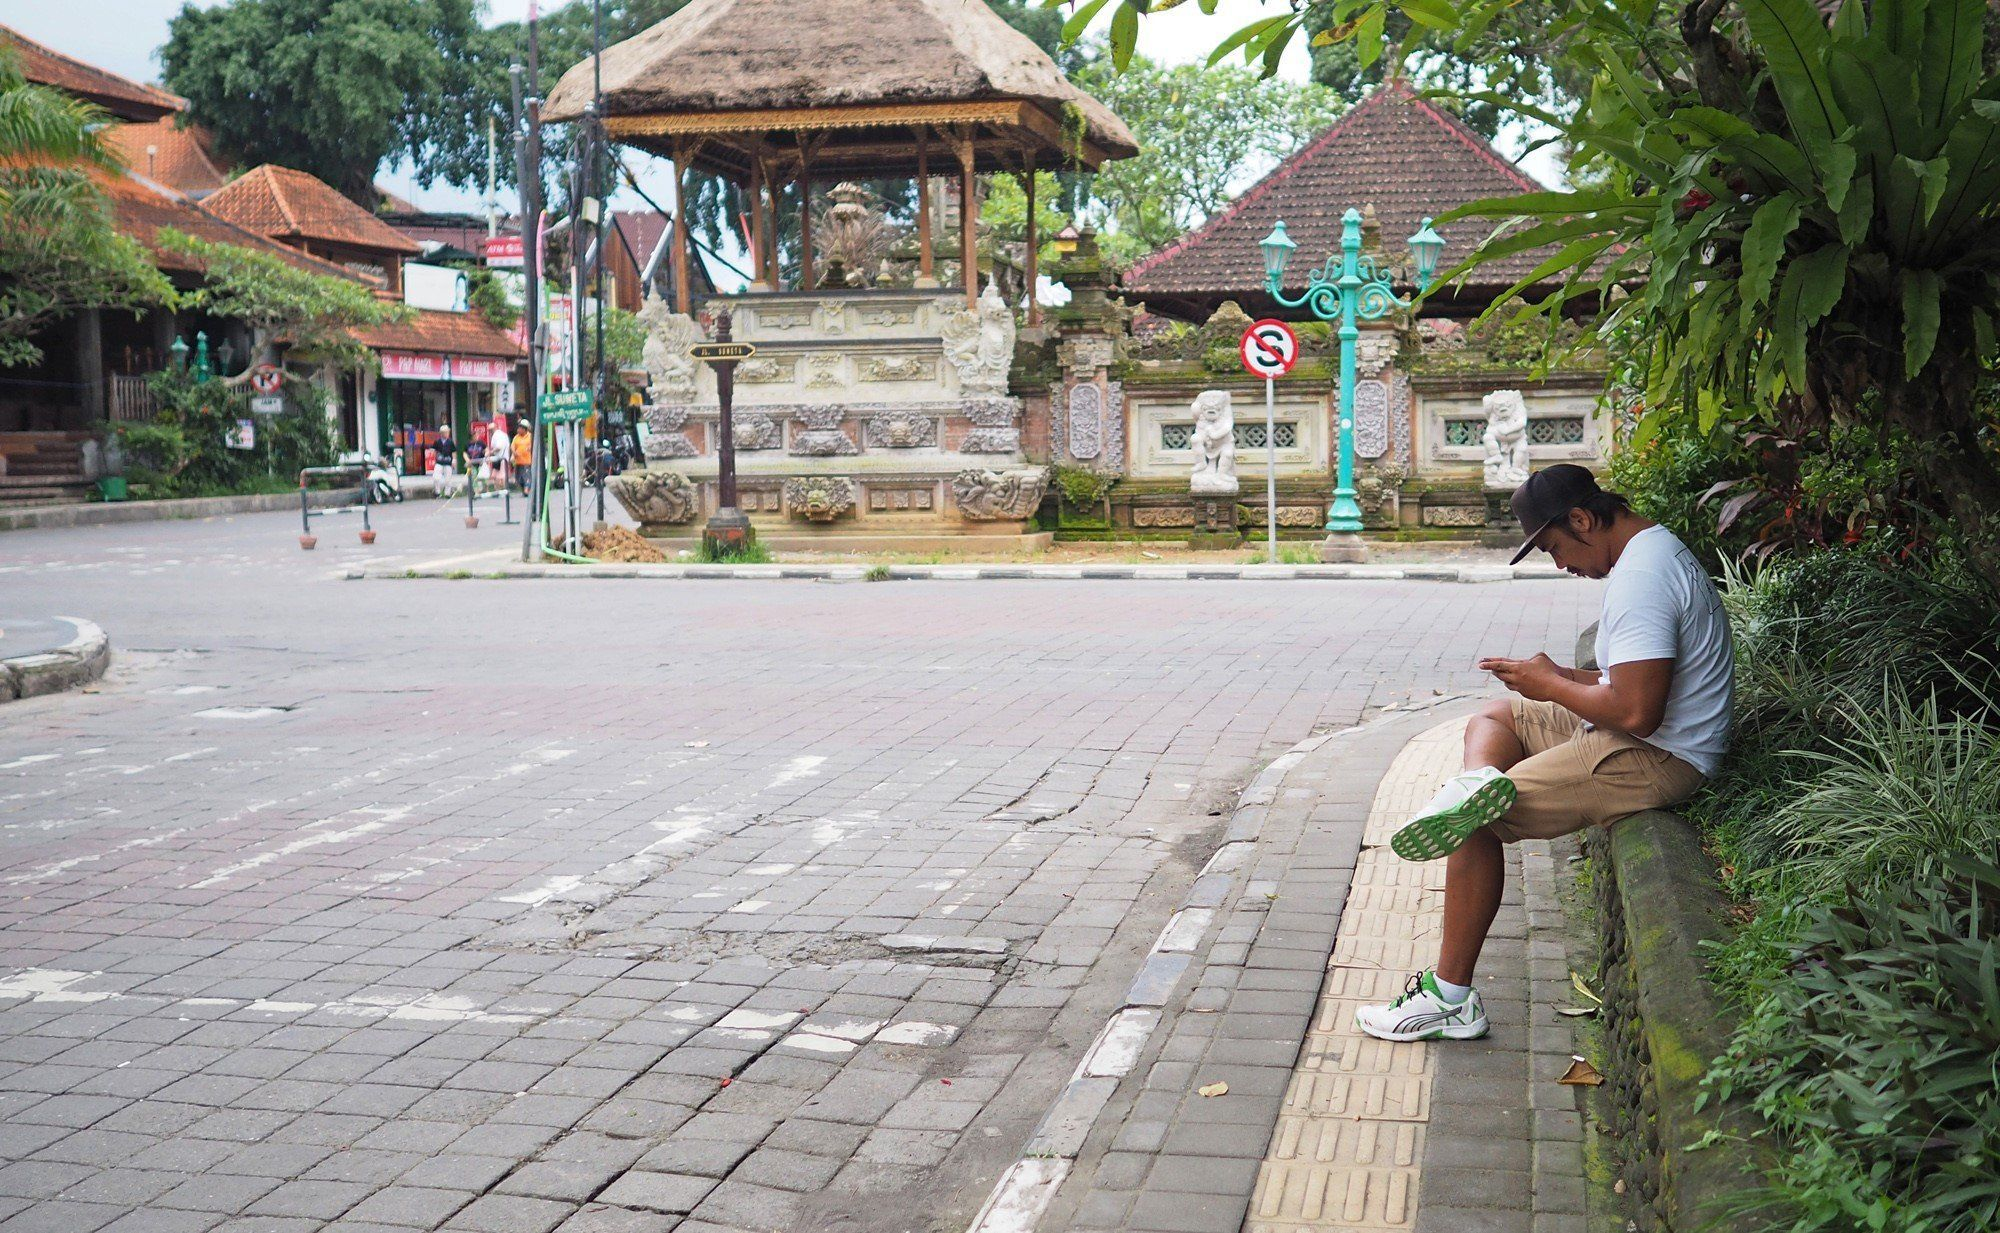 Bali Will Turn Off Its Internet For 24 Hours During Its New Year